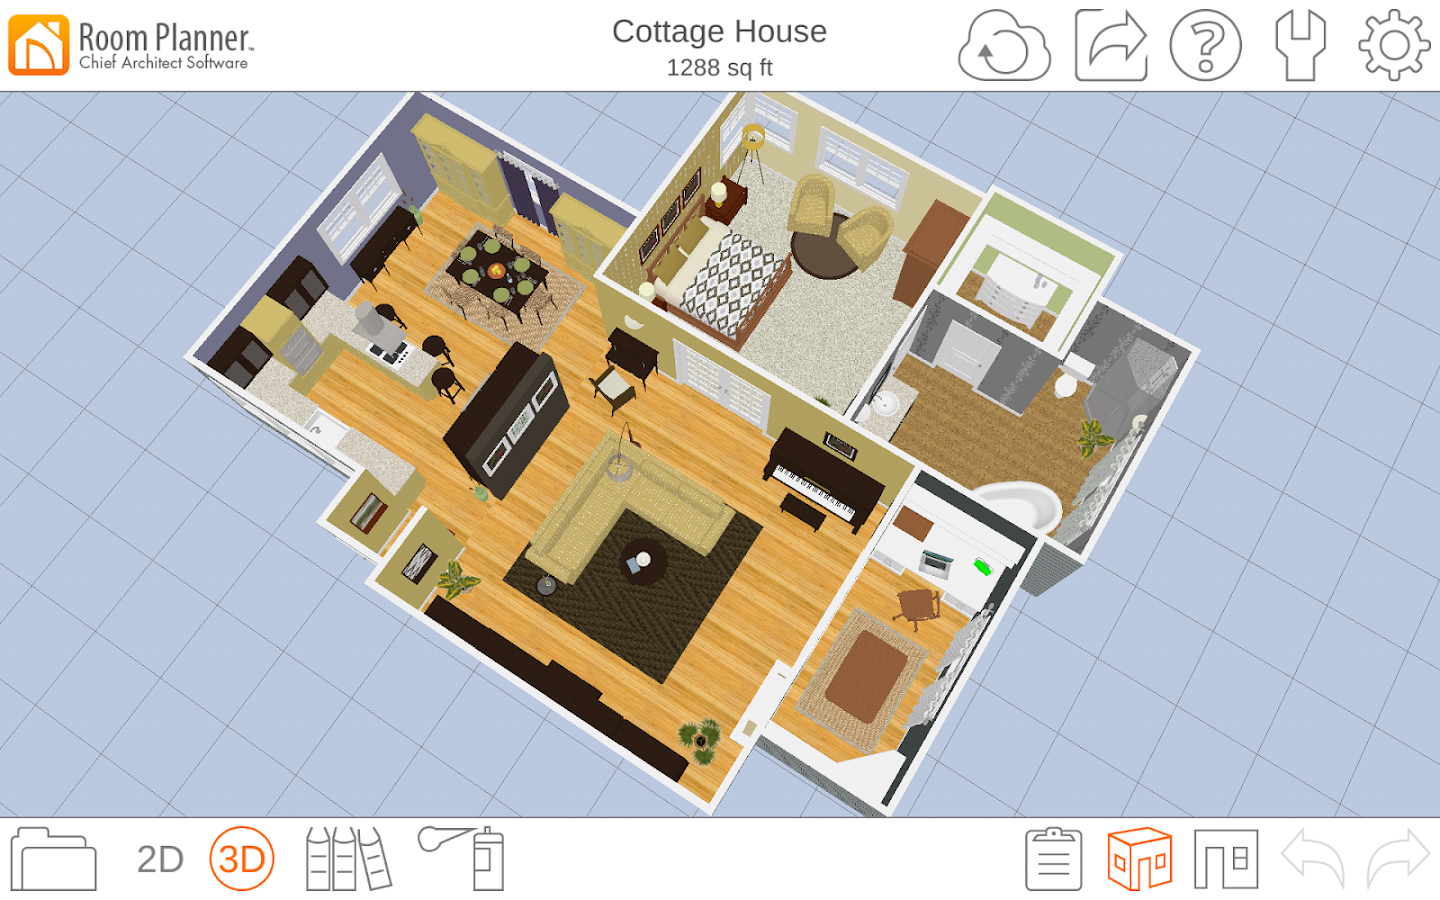 Room planner home design android apps on google play 3d design room planner